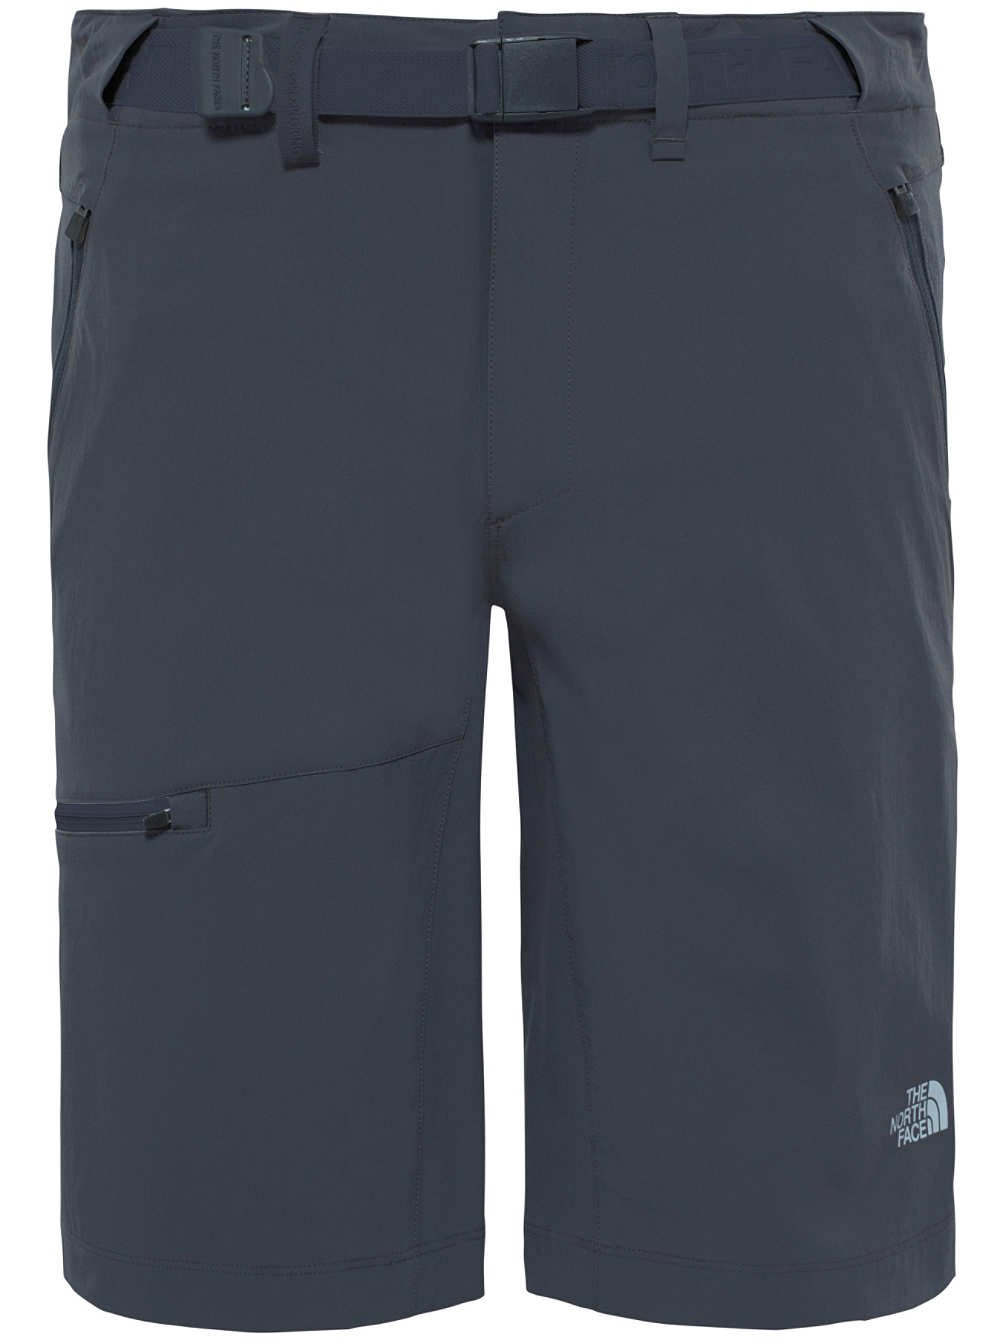 THE NORTH FACE Herren Hose Speedlight